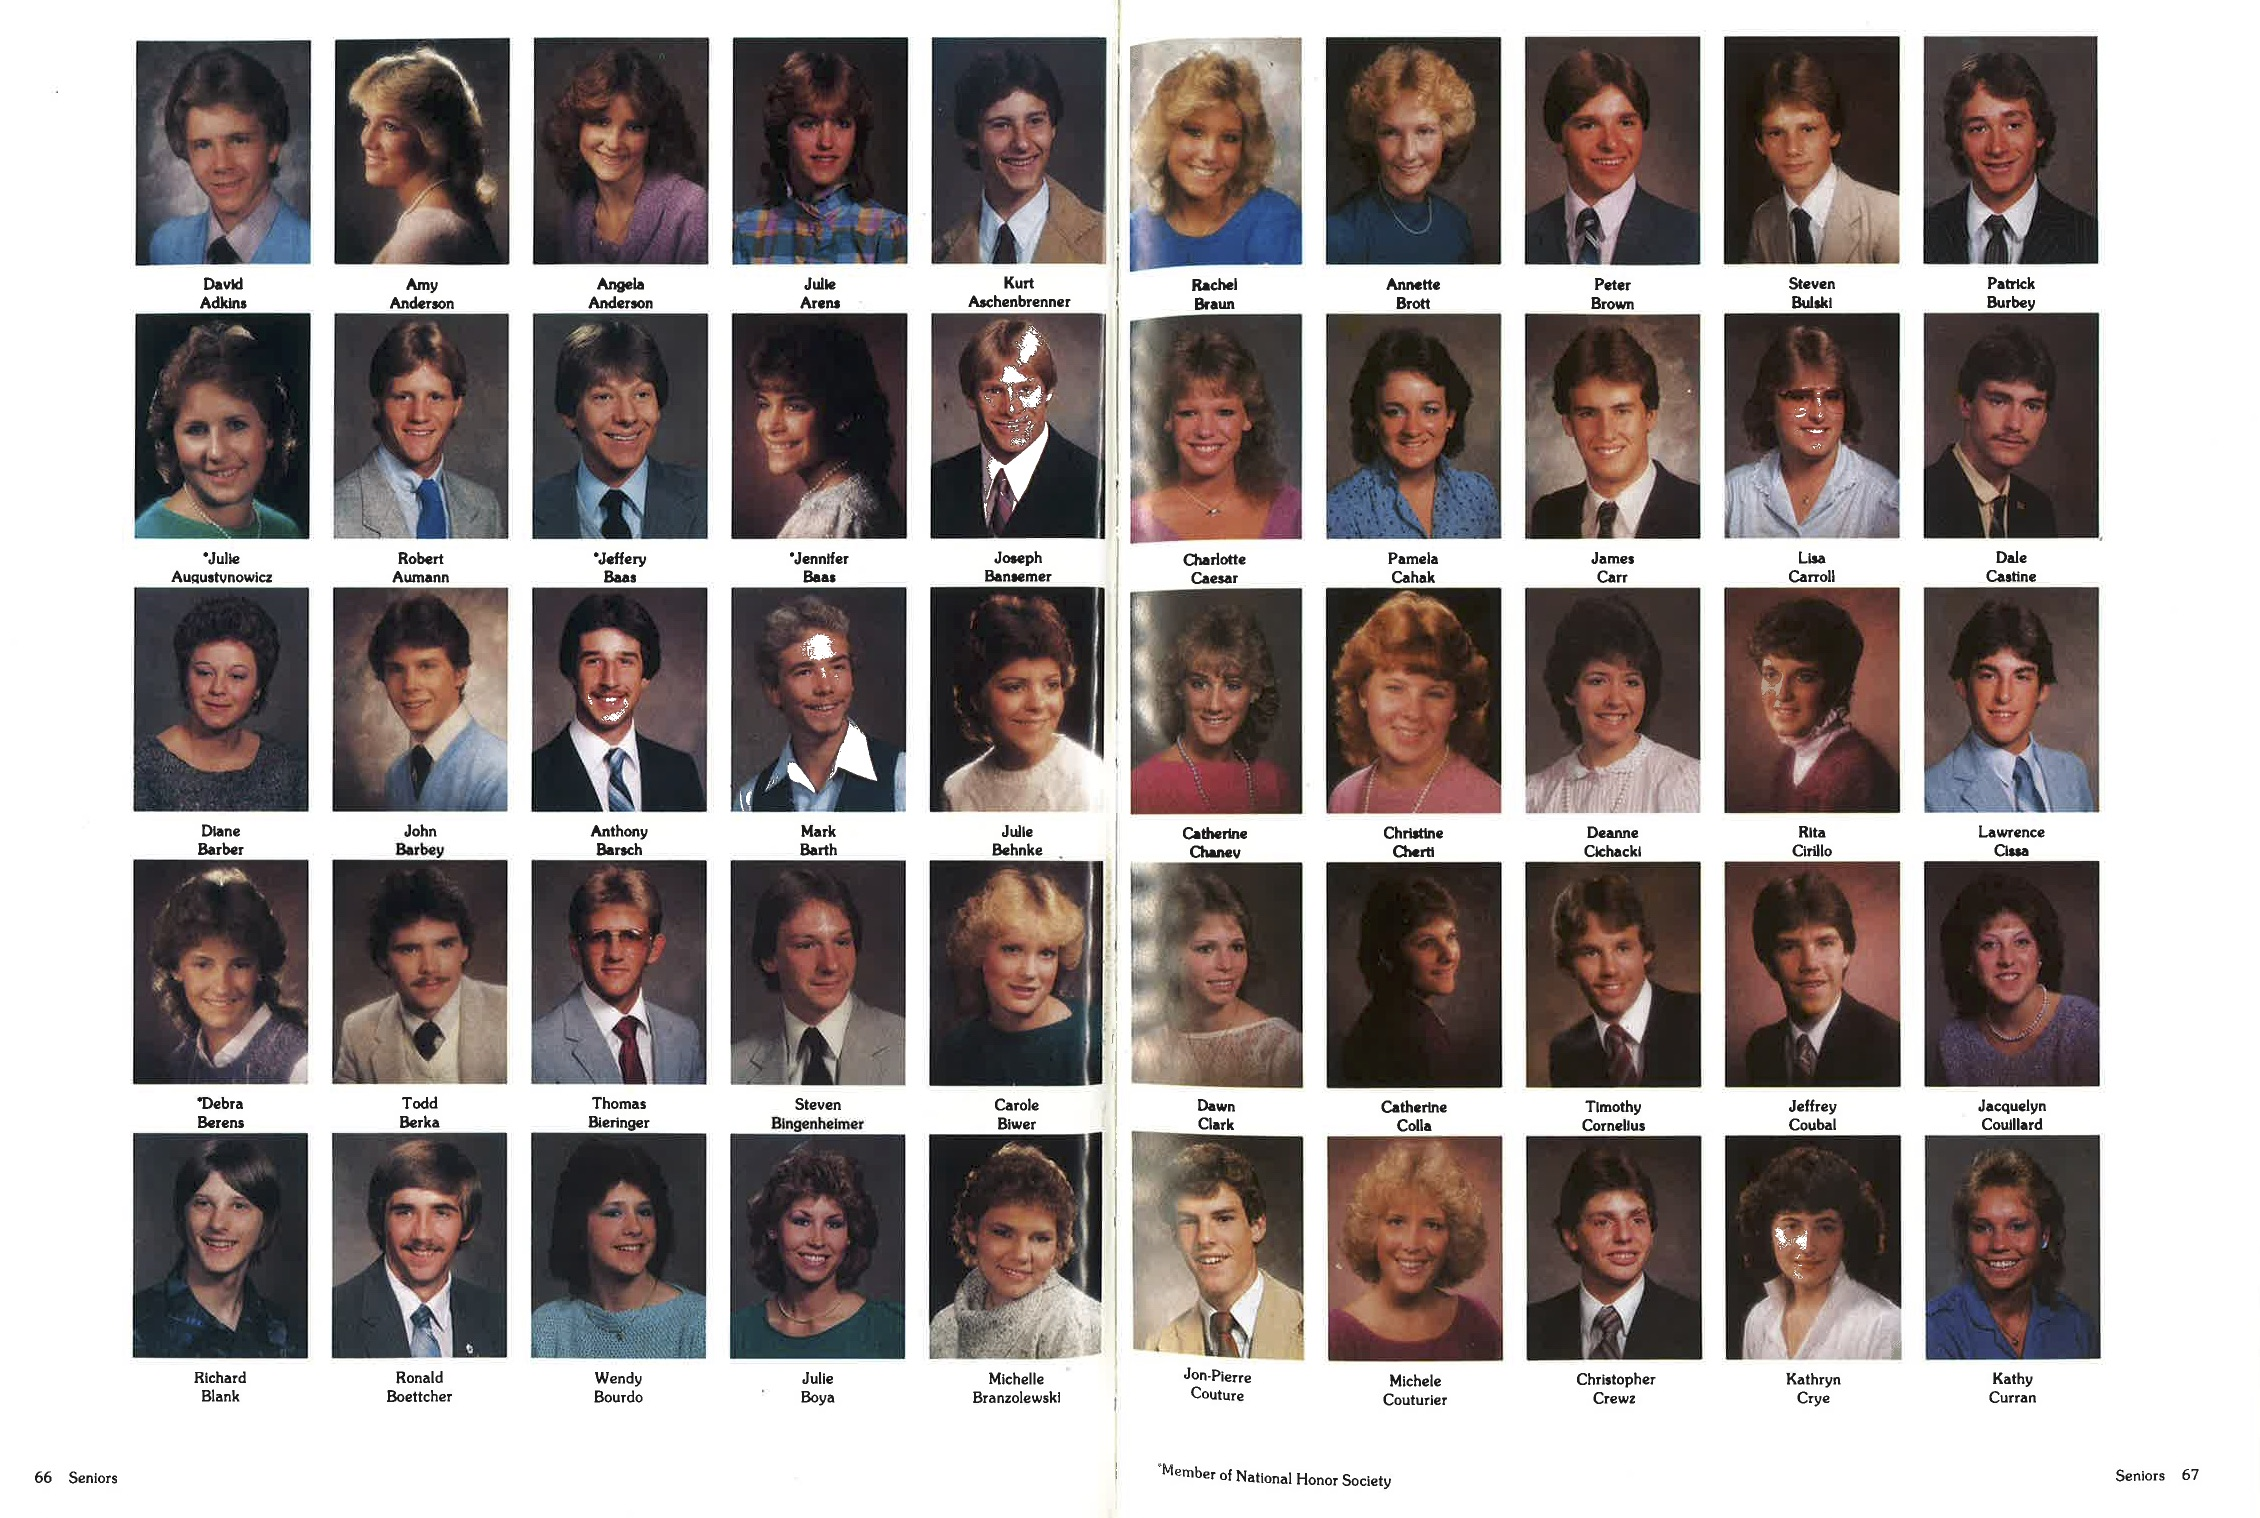 1985_Yearbook_30.jpg